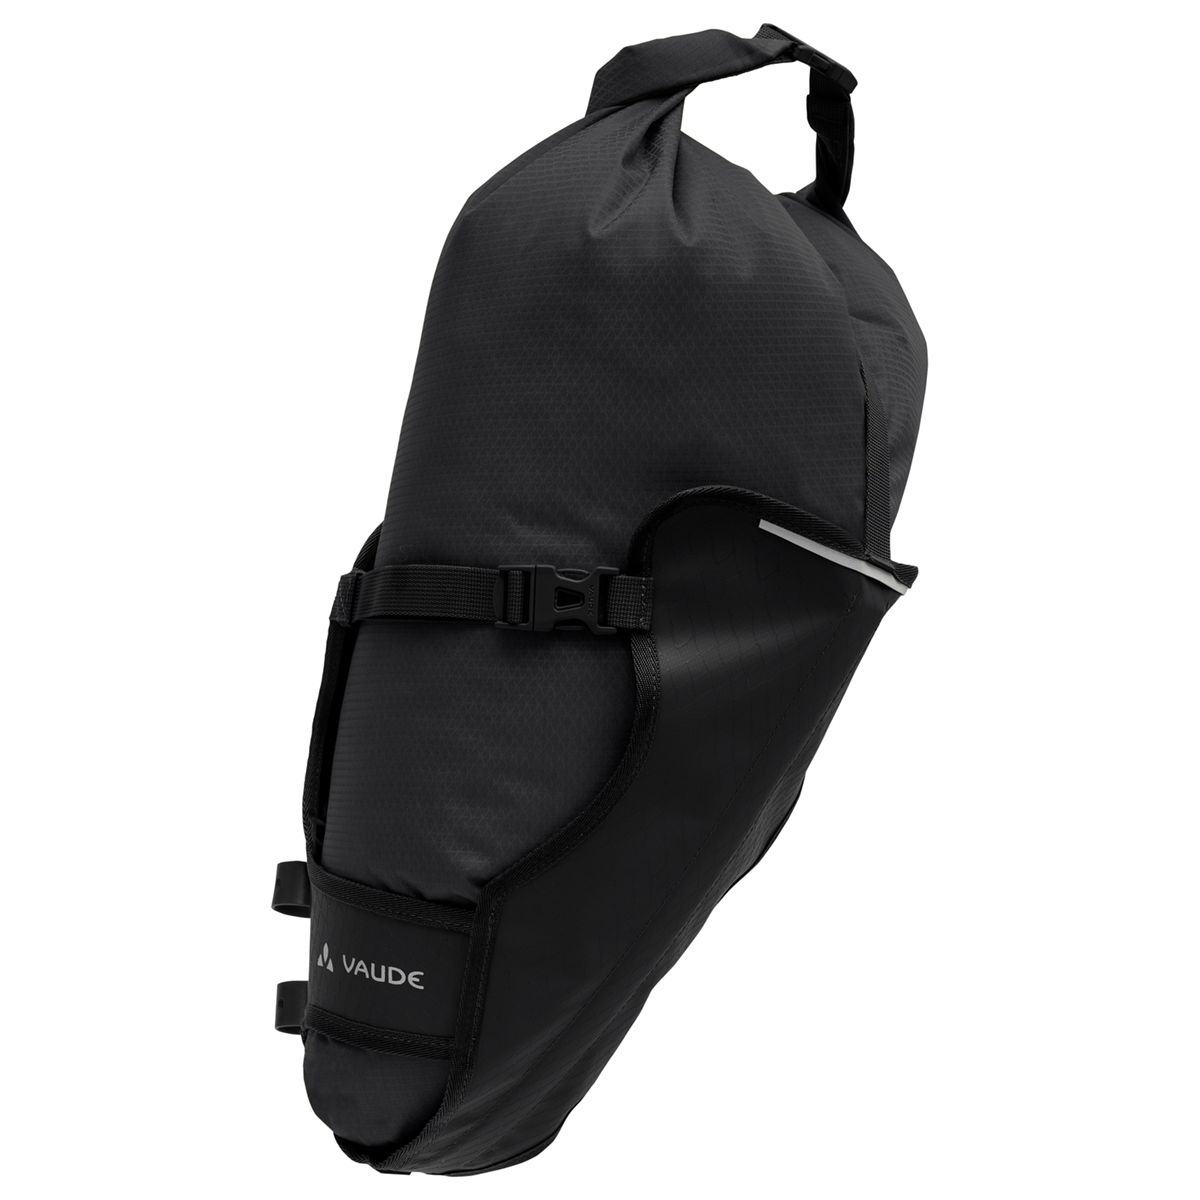 Trailsaddle saddle bag